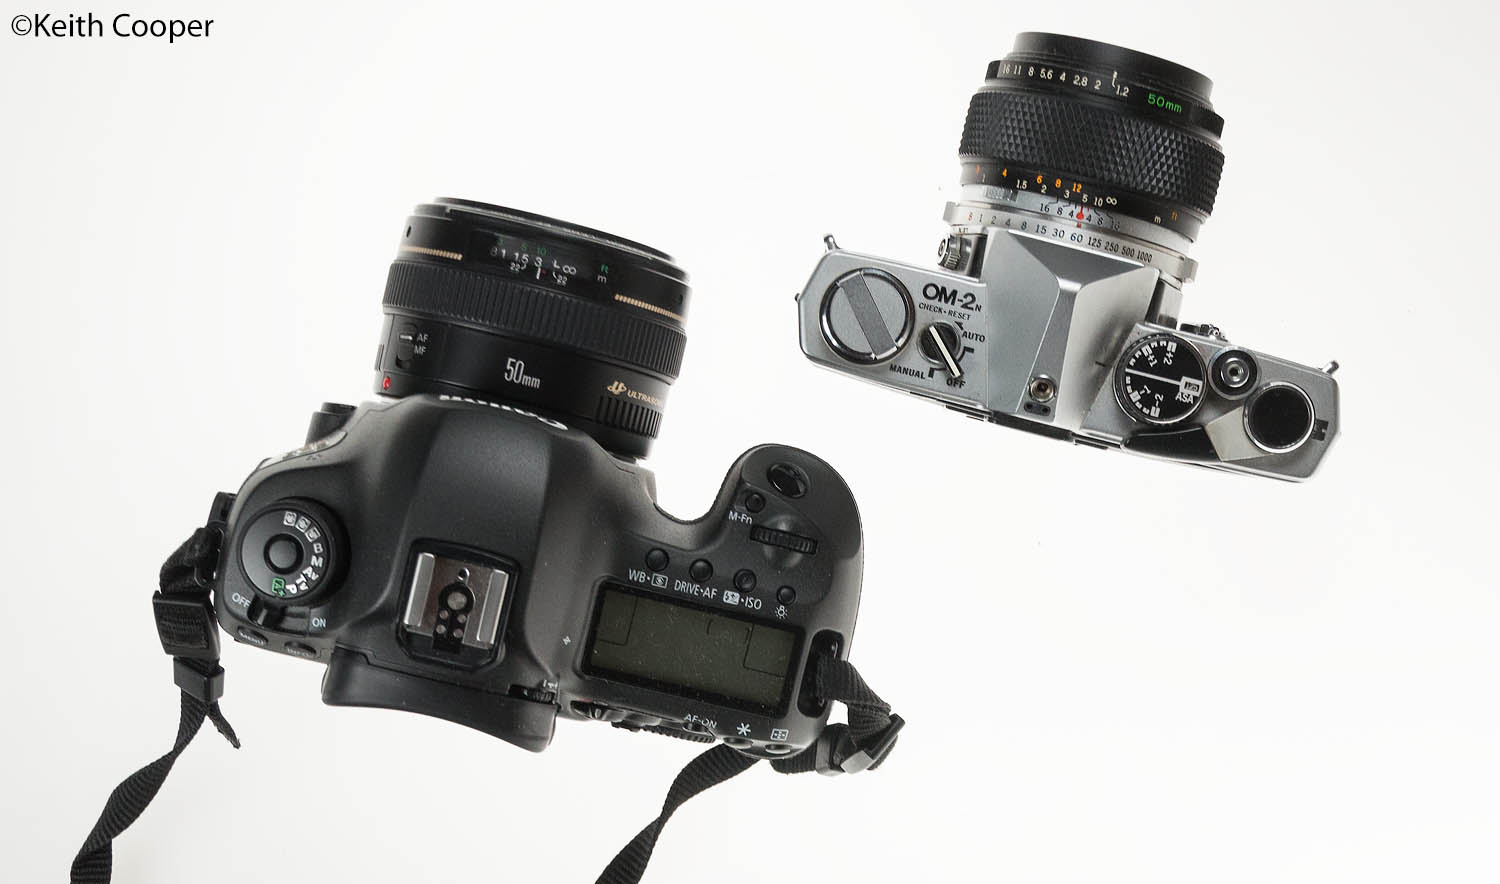 Canon 5Ds and Olympus OM-2n 50mm